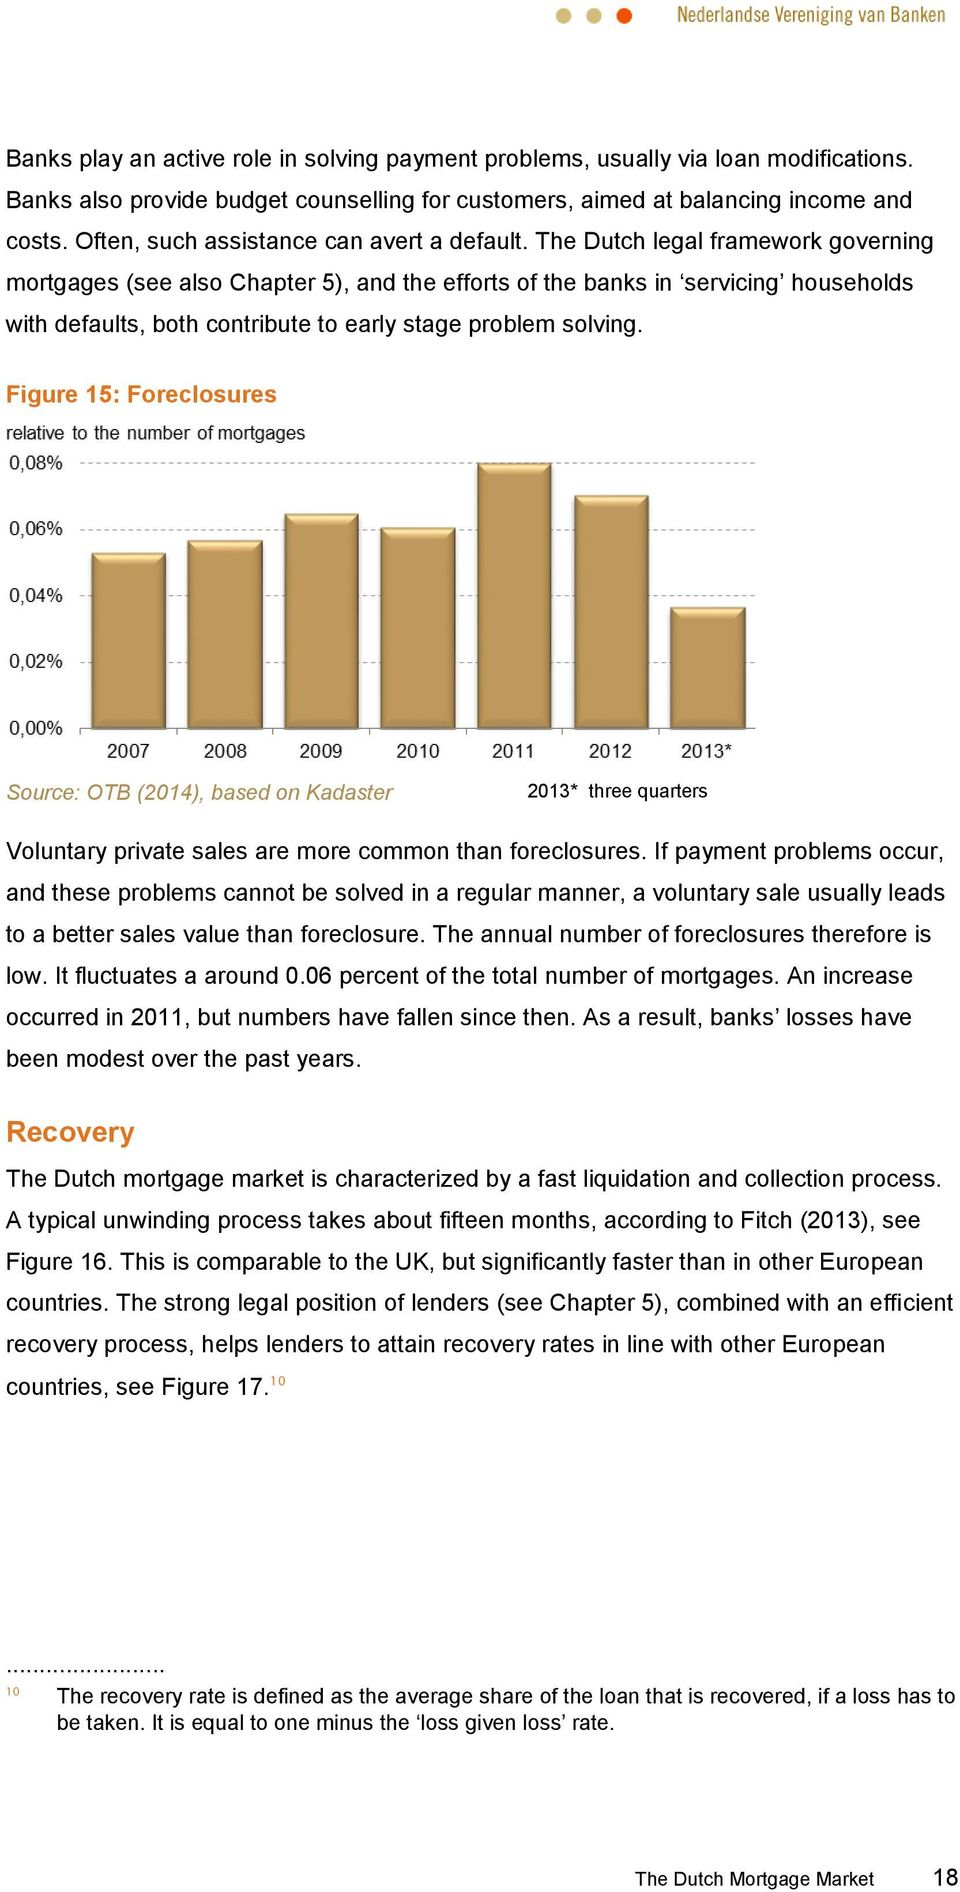 The Dutch legal framework governing mortgages (see also Chapter 5), and the efforts of the banks in servicing households with defaults, both contribute to early stage problem solving.